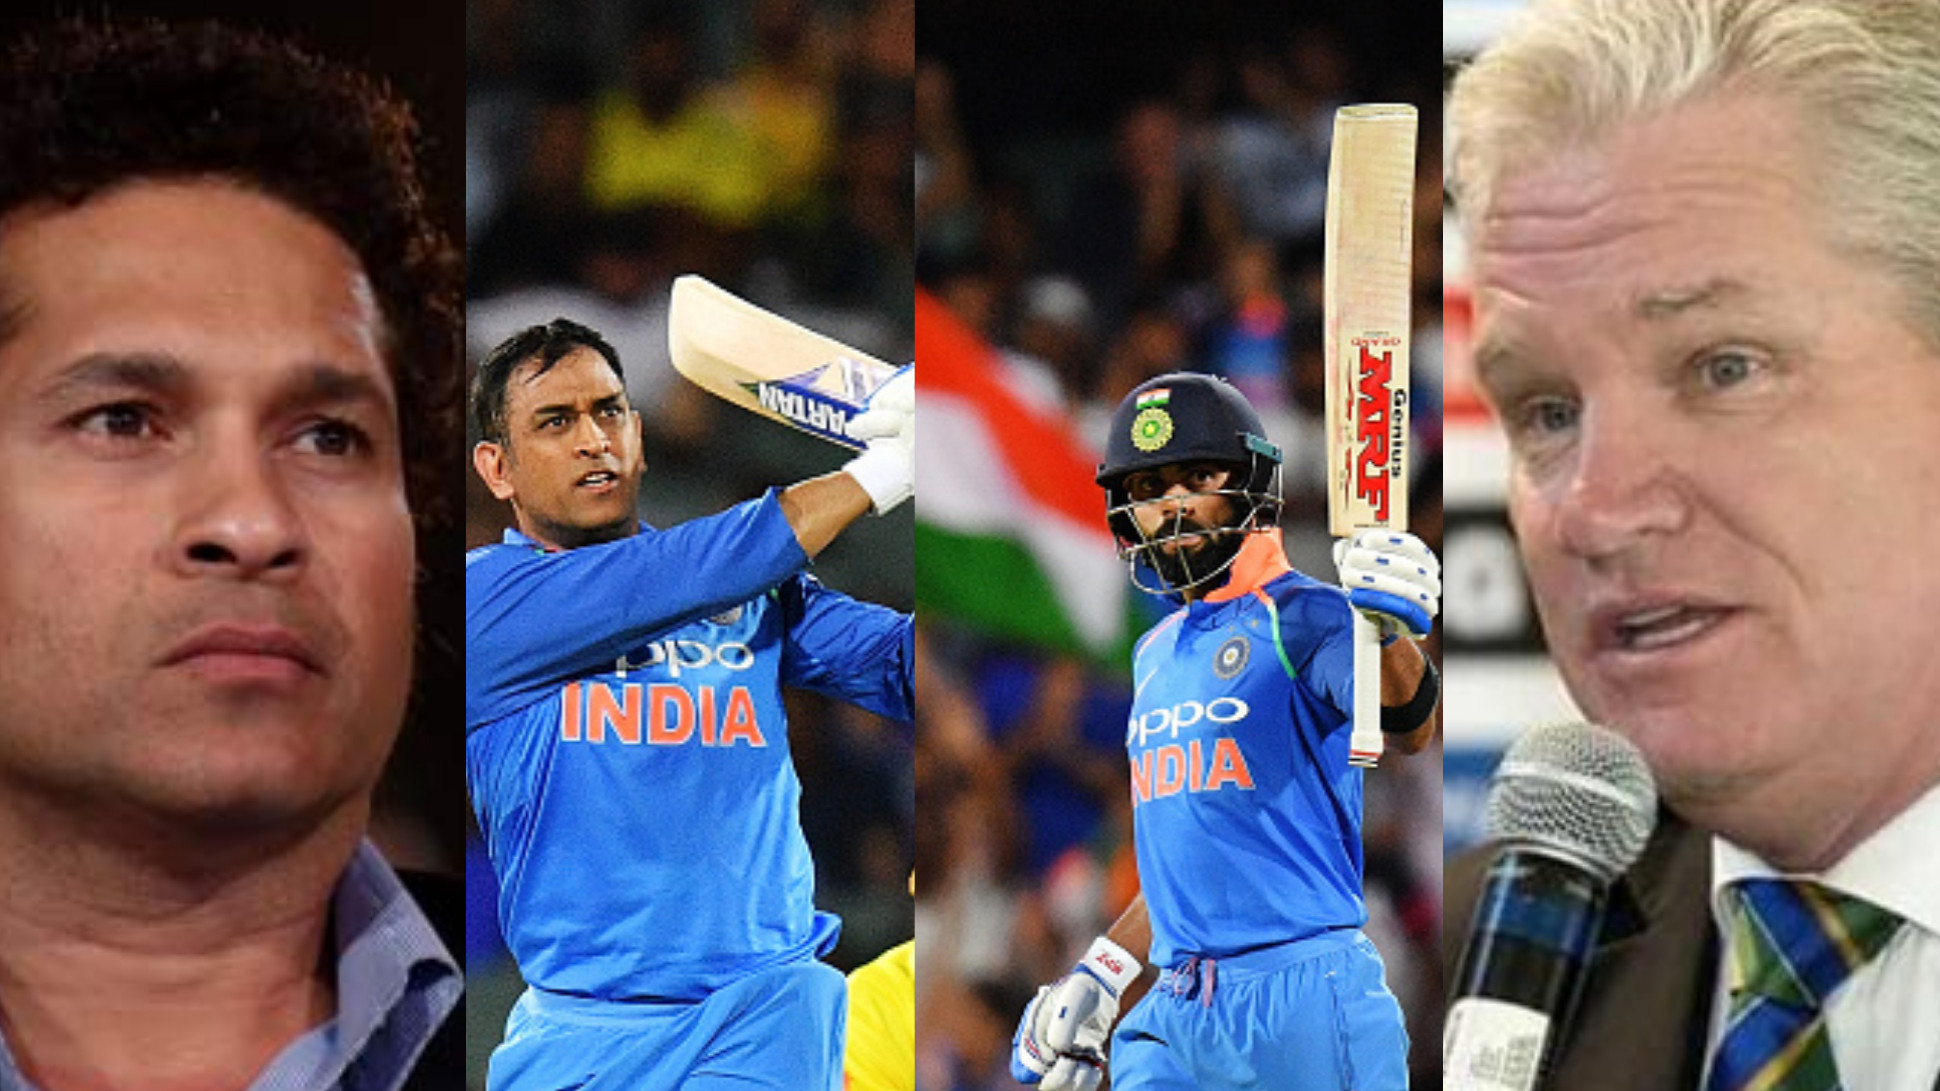 AUS v IND 2018-19: Cricket fraternity hails the chase masters Kohli-Dhoni as they take India to a 6-wicket win in Adelaide